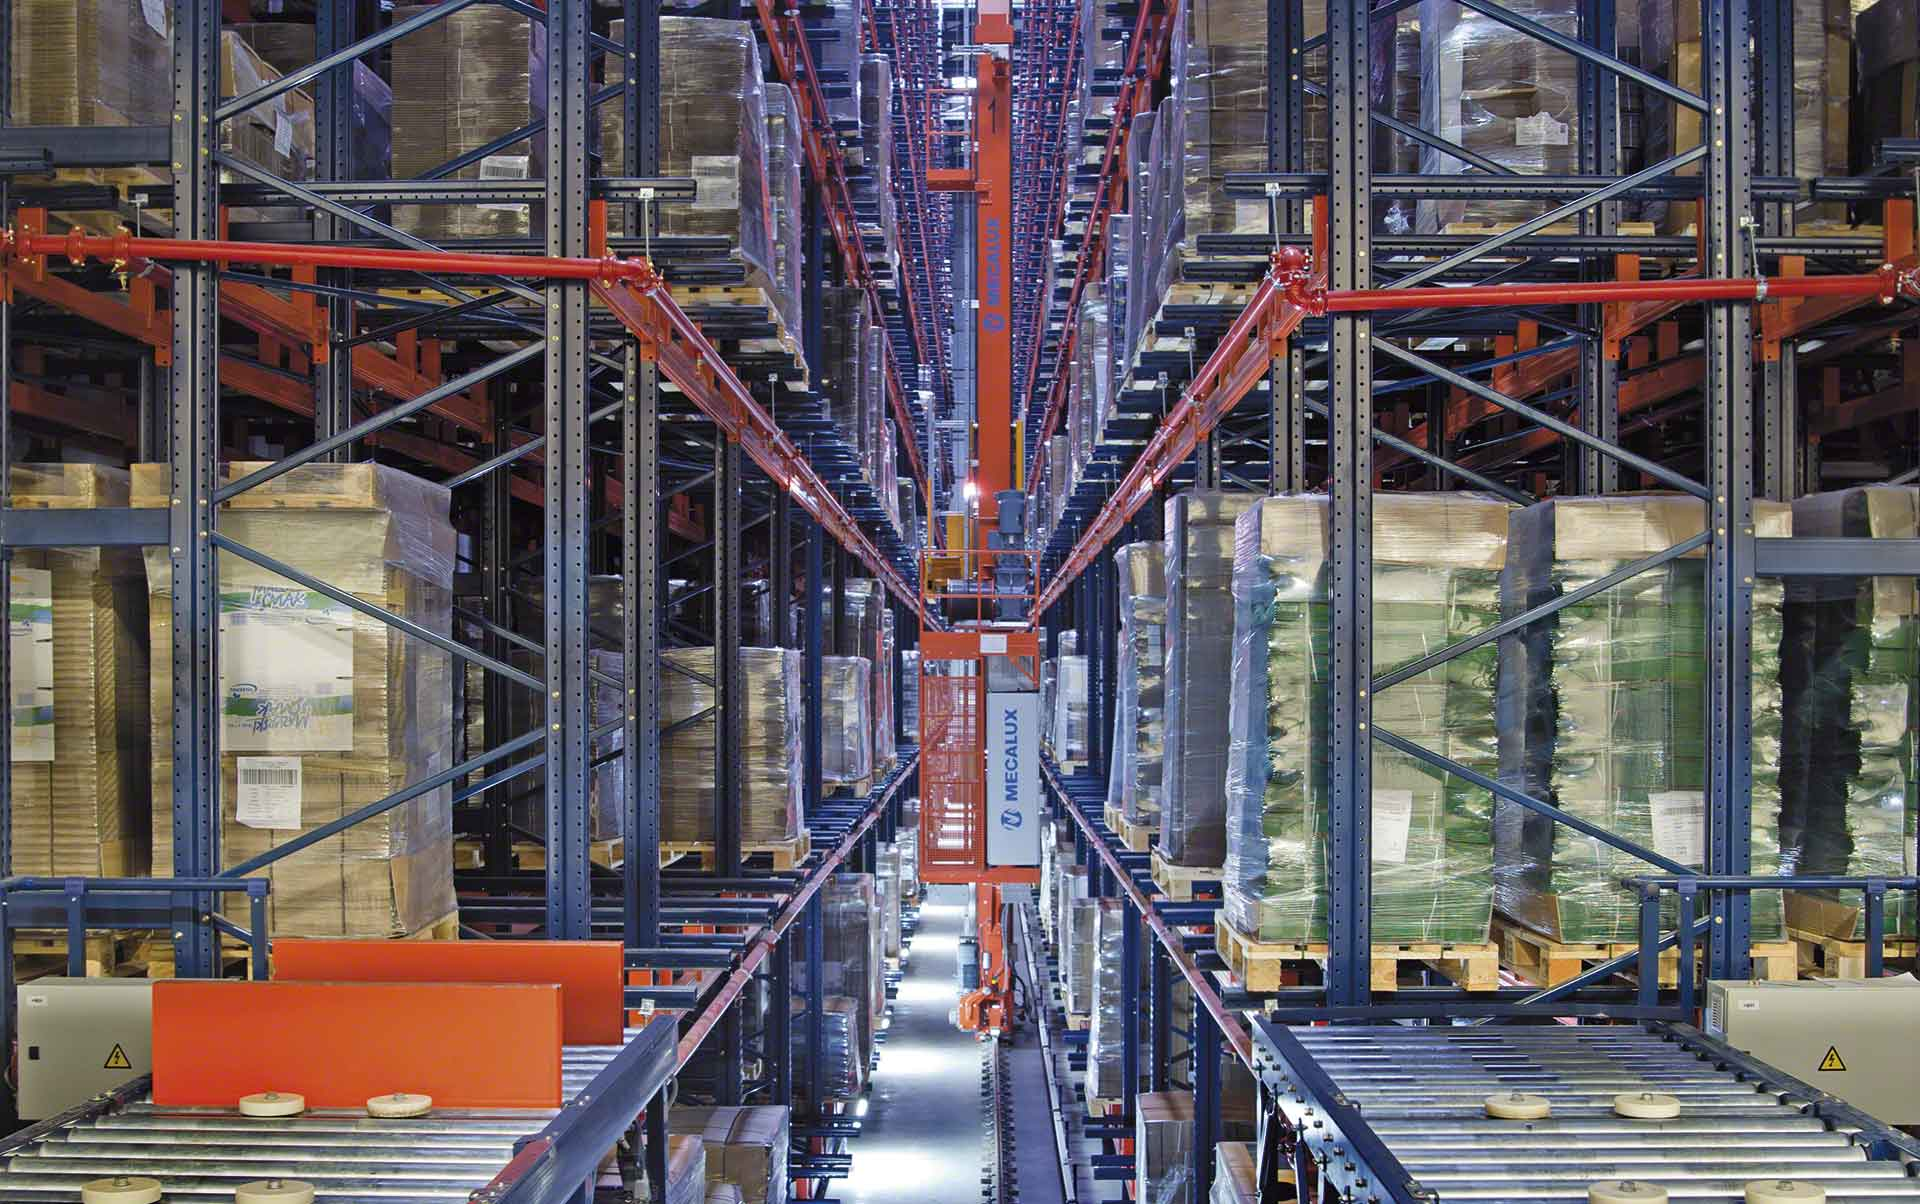 Easy WMS, the warehouse management system by Mecalux, runs WOK's installation